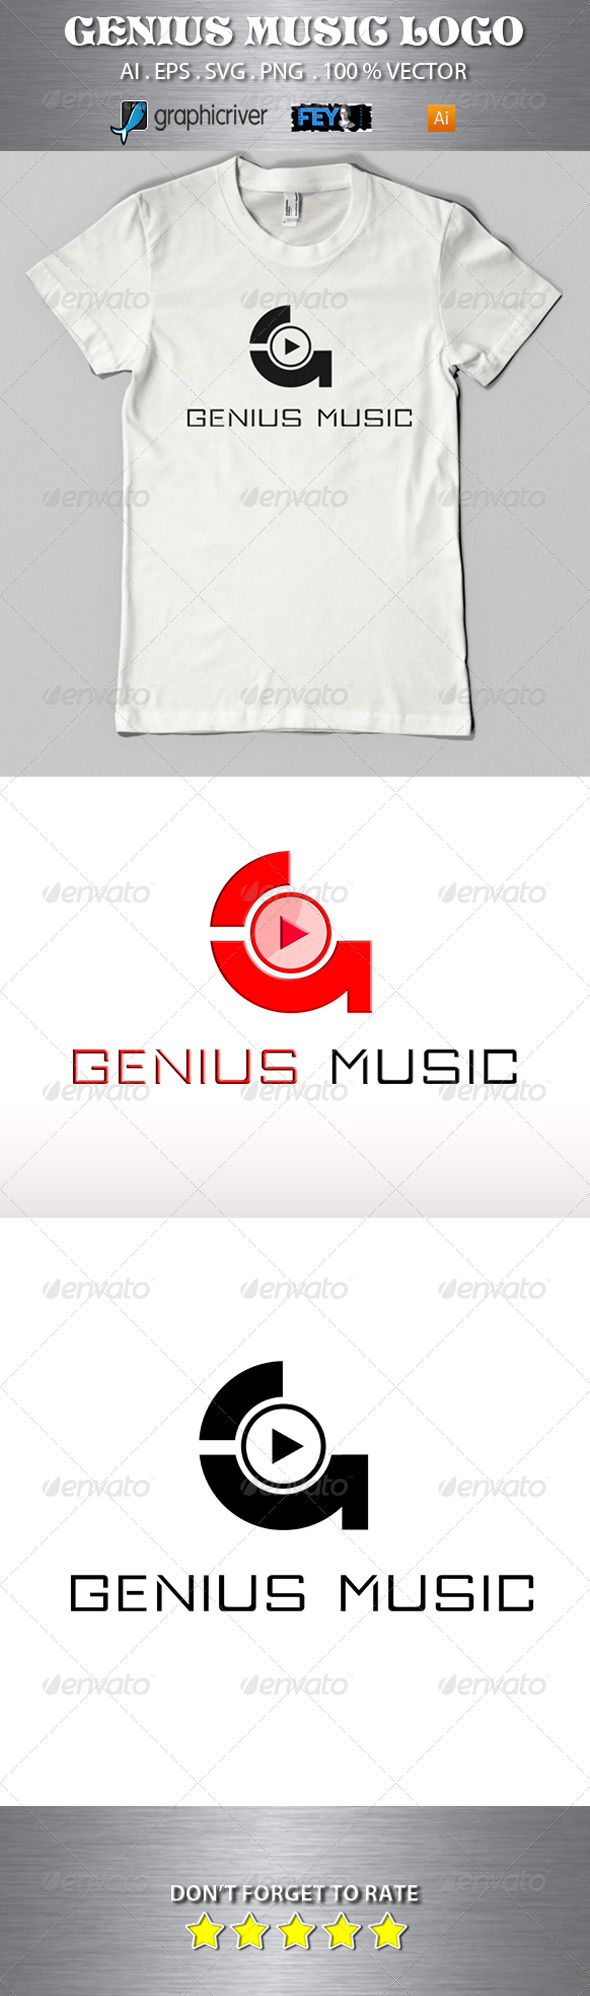 GraphicRiver Genius Music Logo 5687948